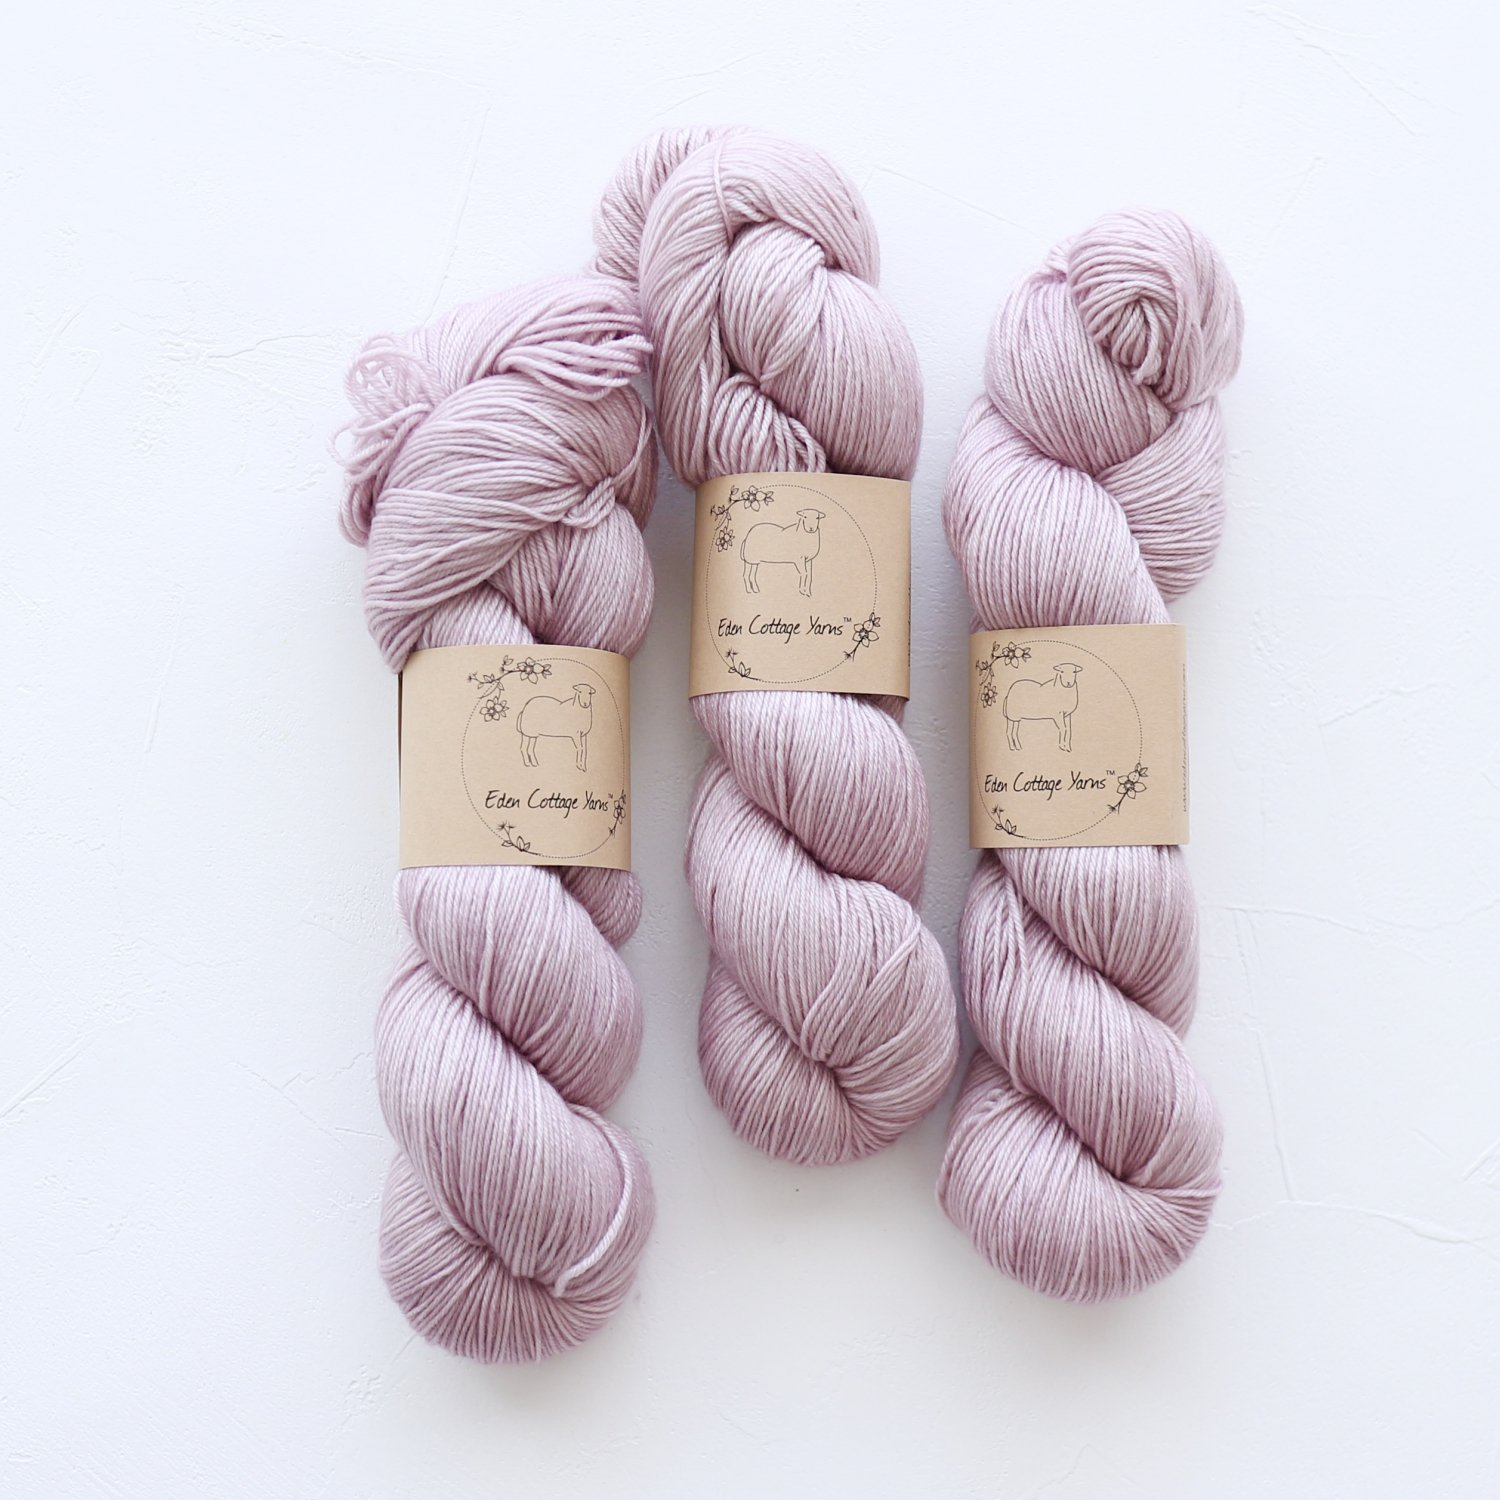 【Eden Cottage Yarns】<br>Pendle 4ply<br>Storm